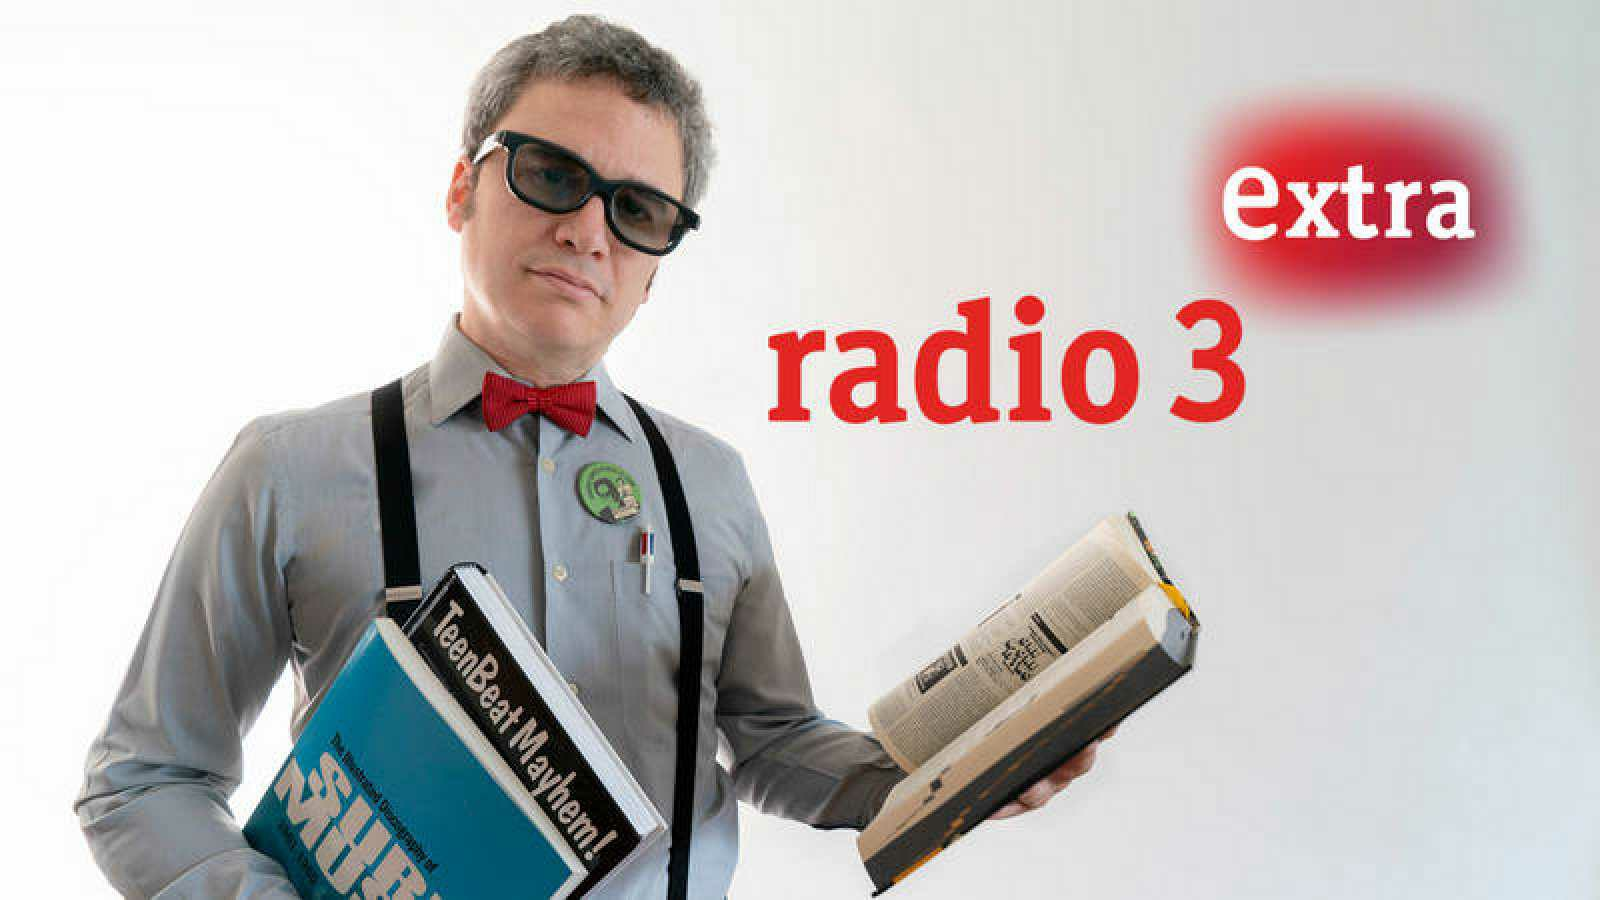 RADIO 3 EXTRA PRODUCE NUEVOS PODCASTS